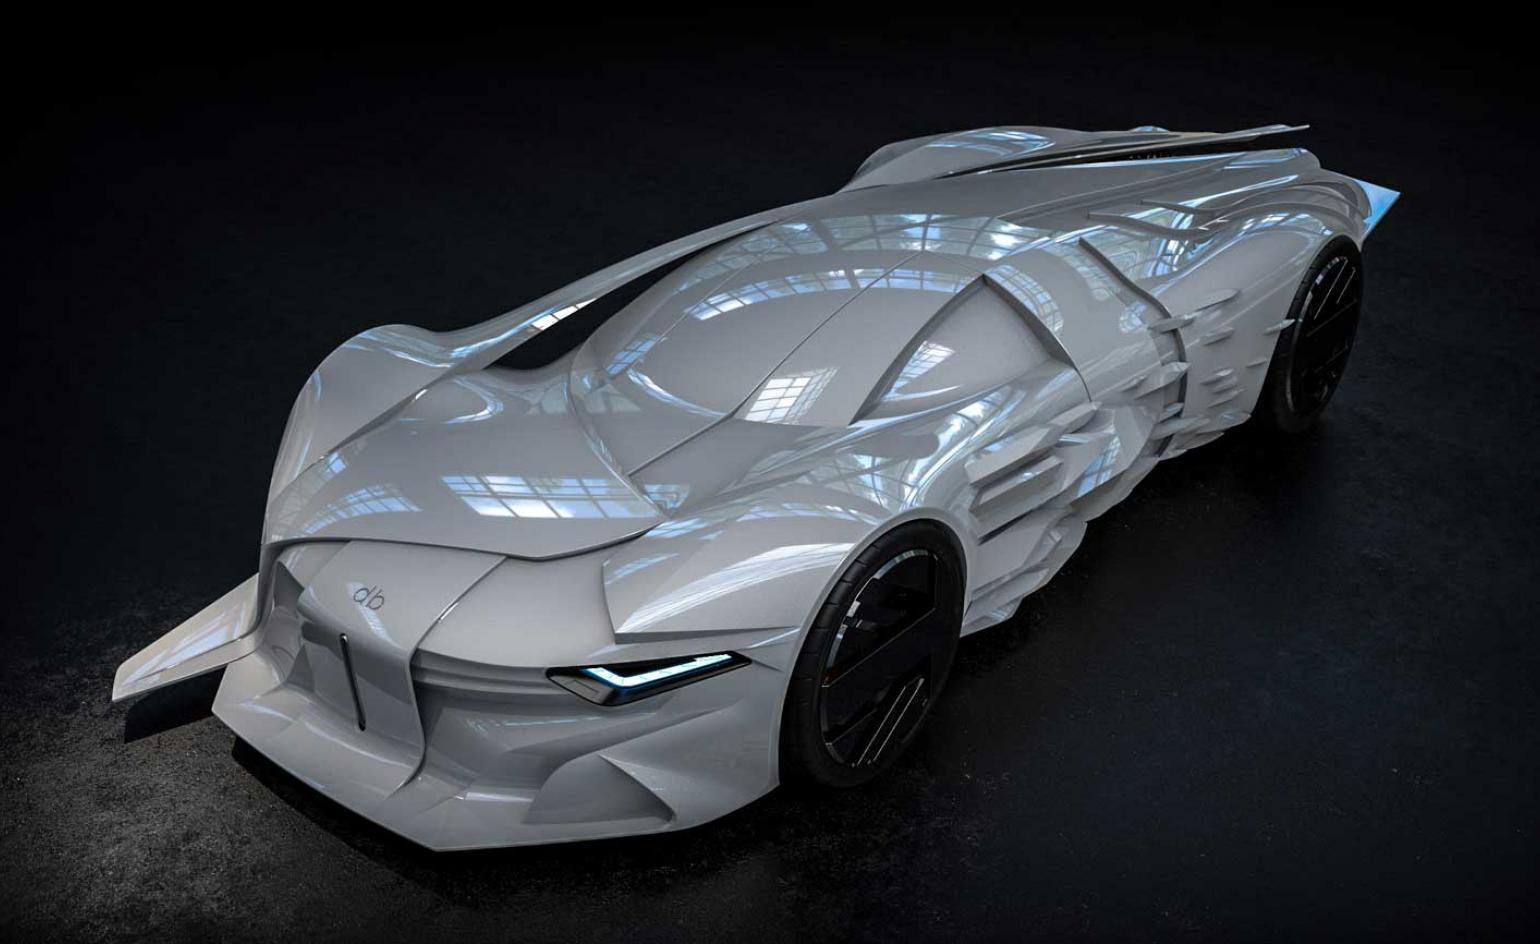 3d Wallpaper For Drawing Room David Bowie S Tribute Car Finally Realised After 21